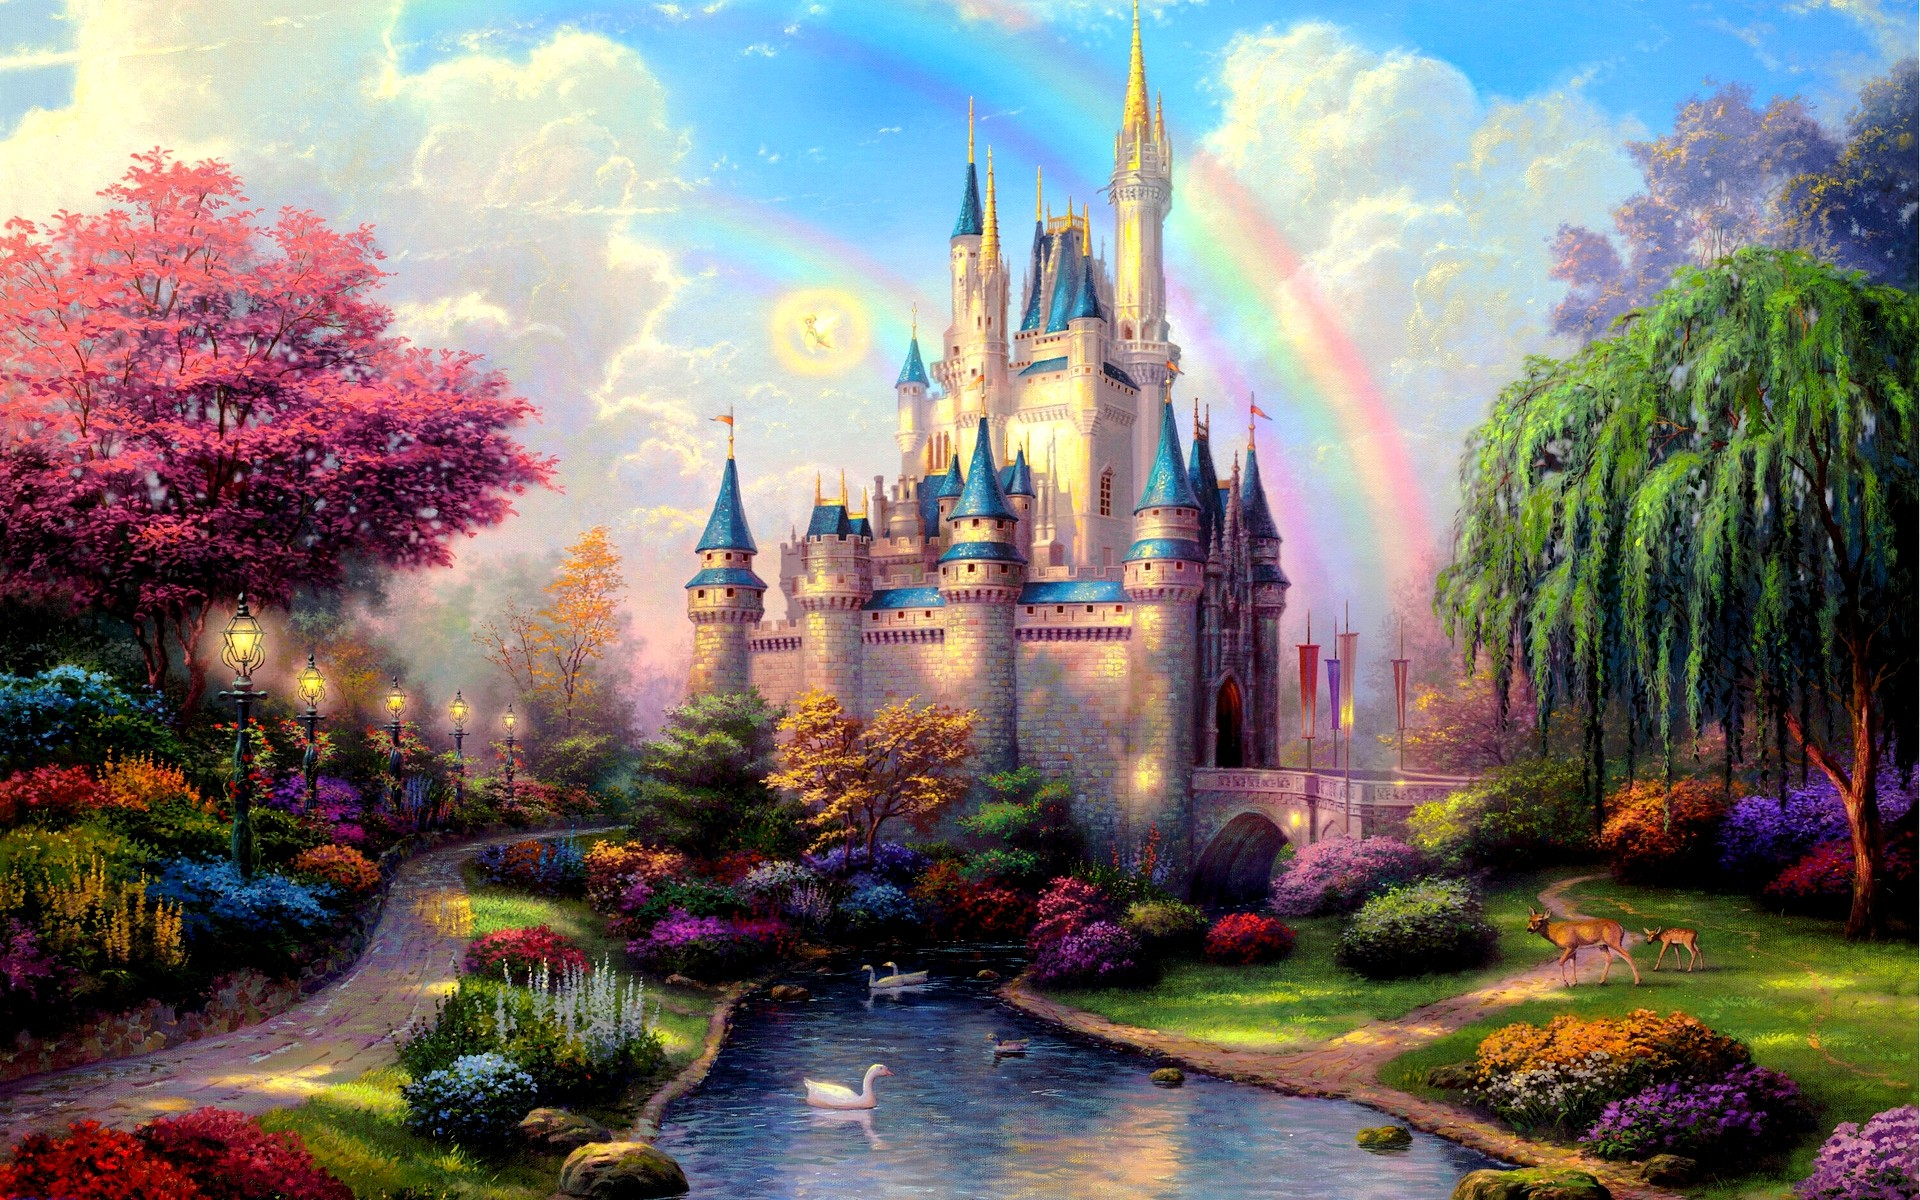 hd-wallpapers-download-new-day-at-cinderella-castle-